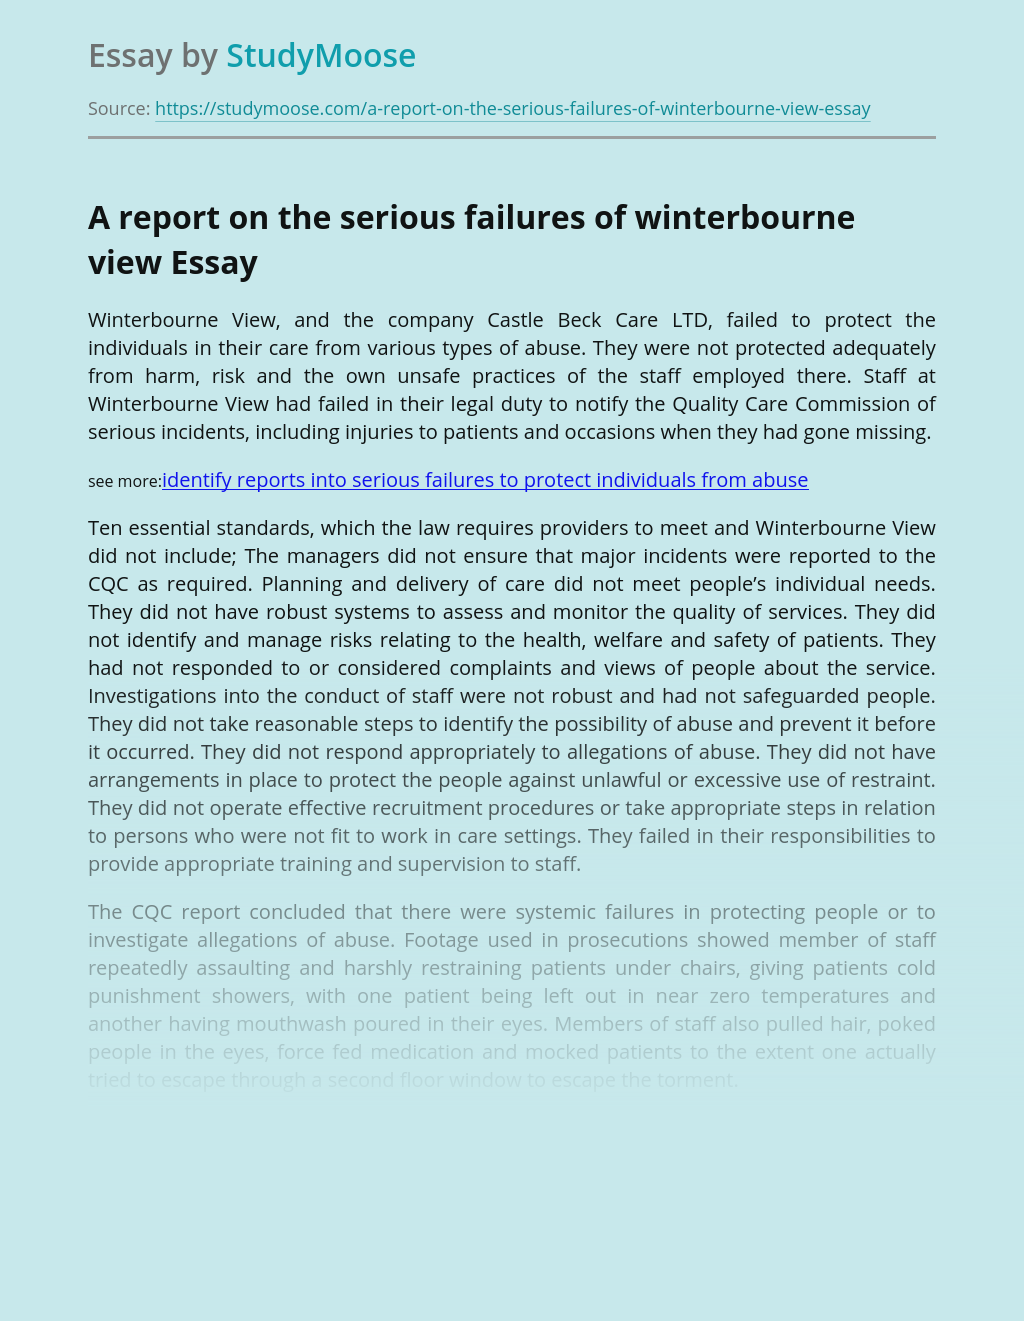 A report on the serious failures of winterbourne view